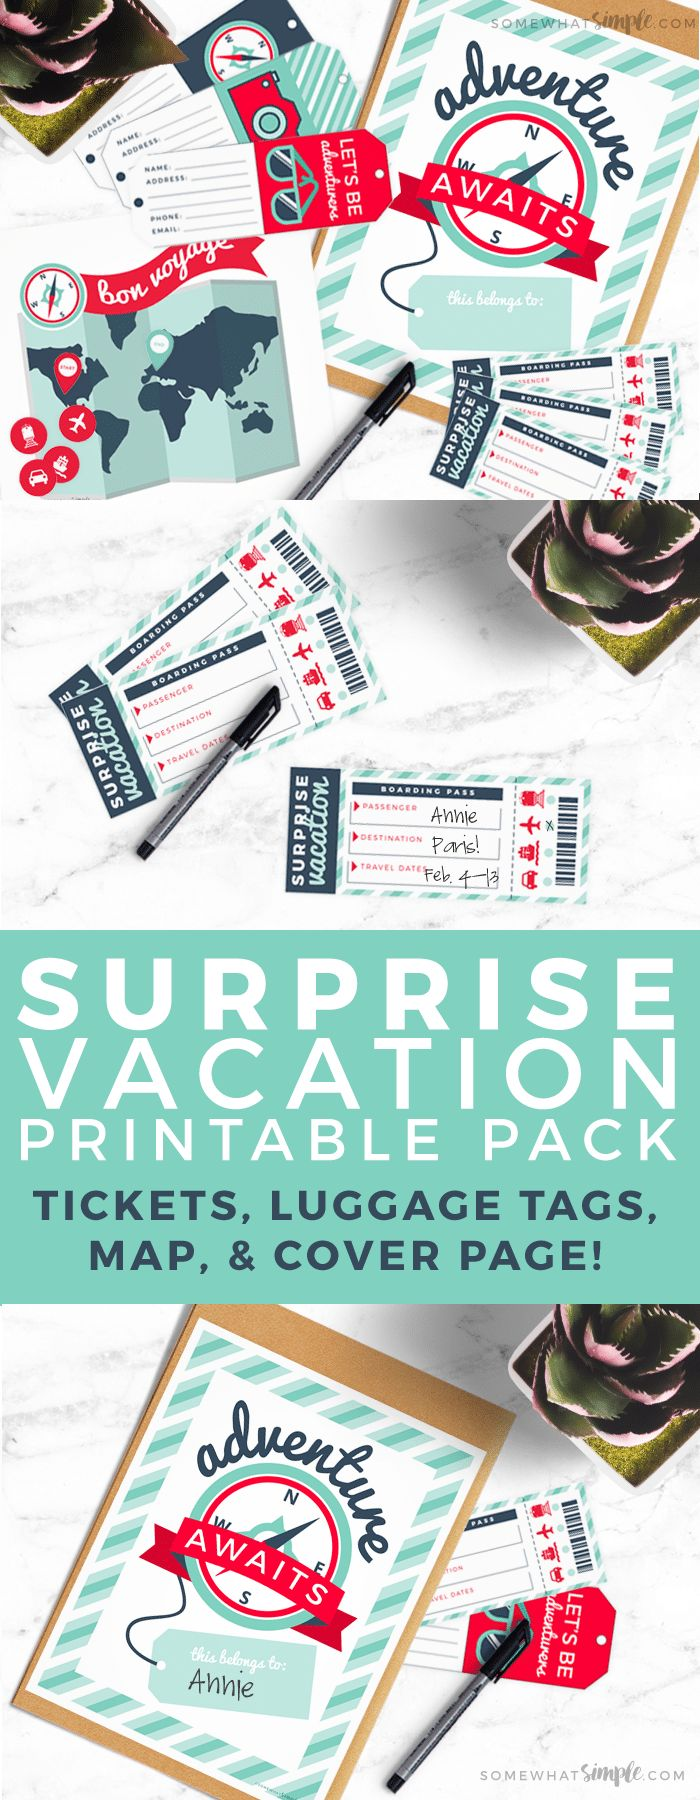 Looking to gift someone with asurprise vacation? Then we've got the perfec...